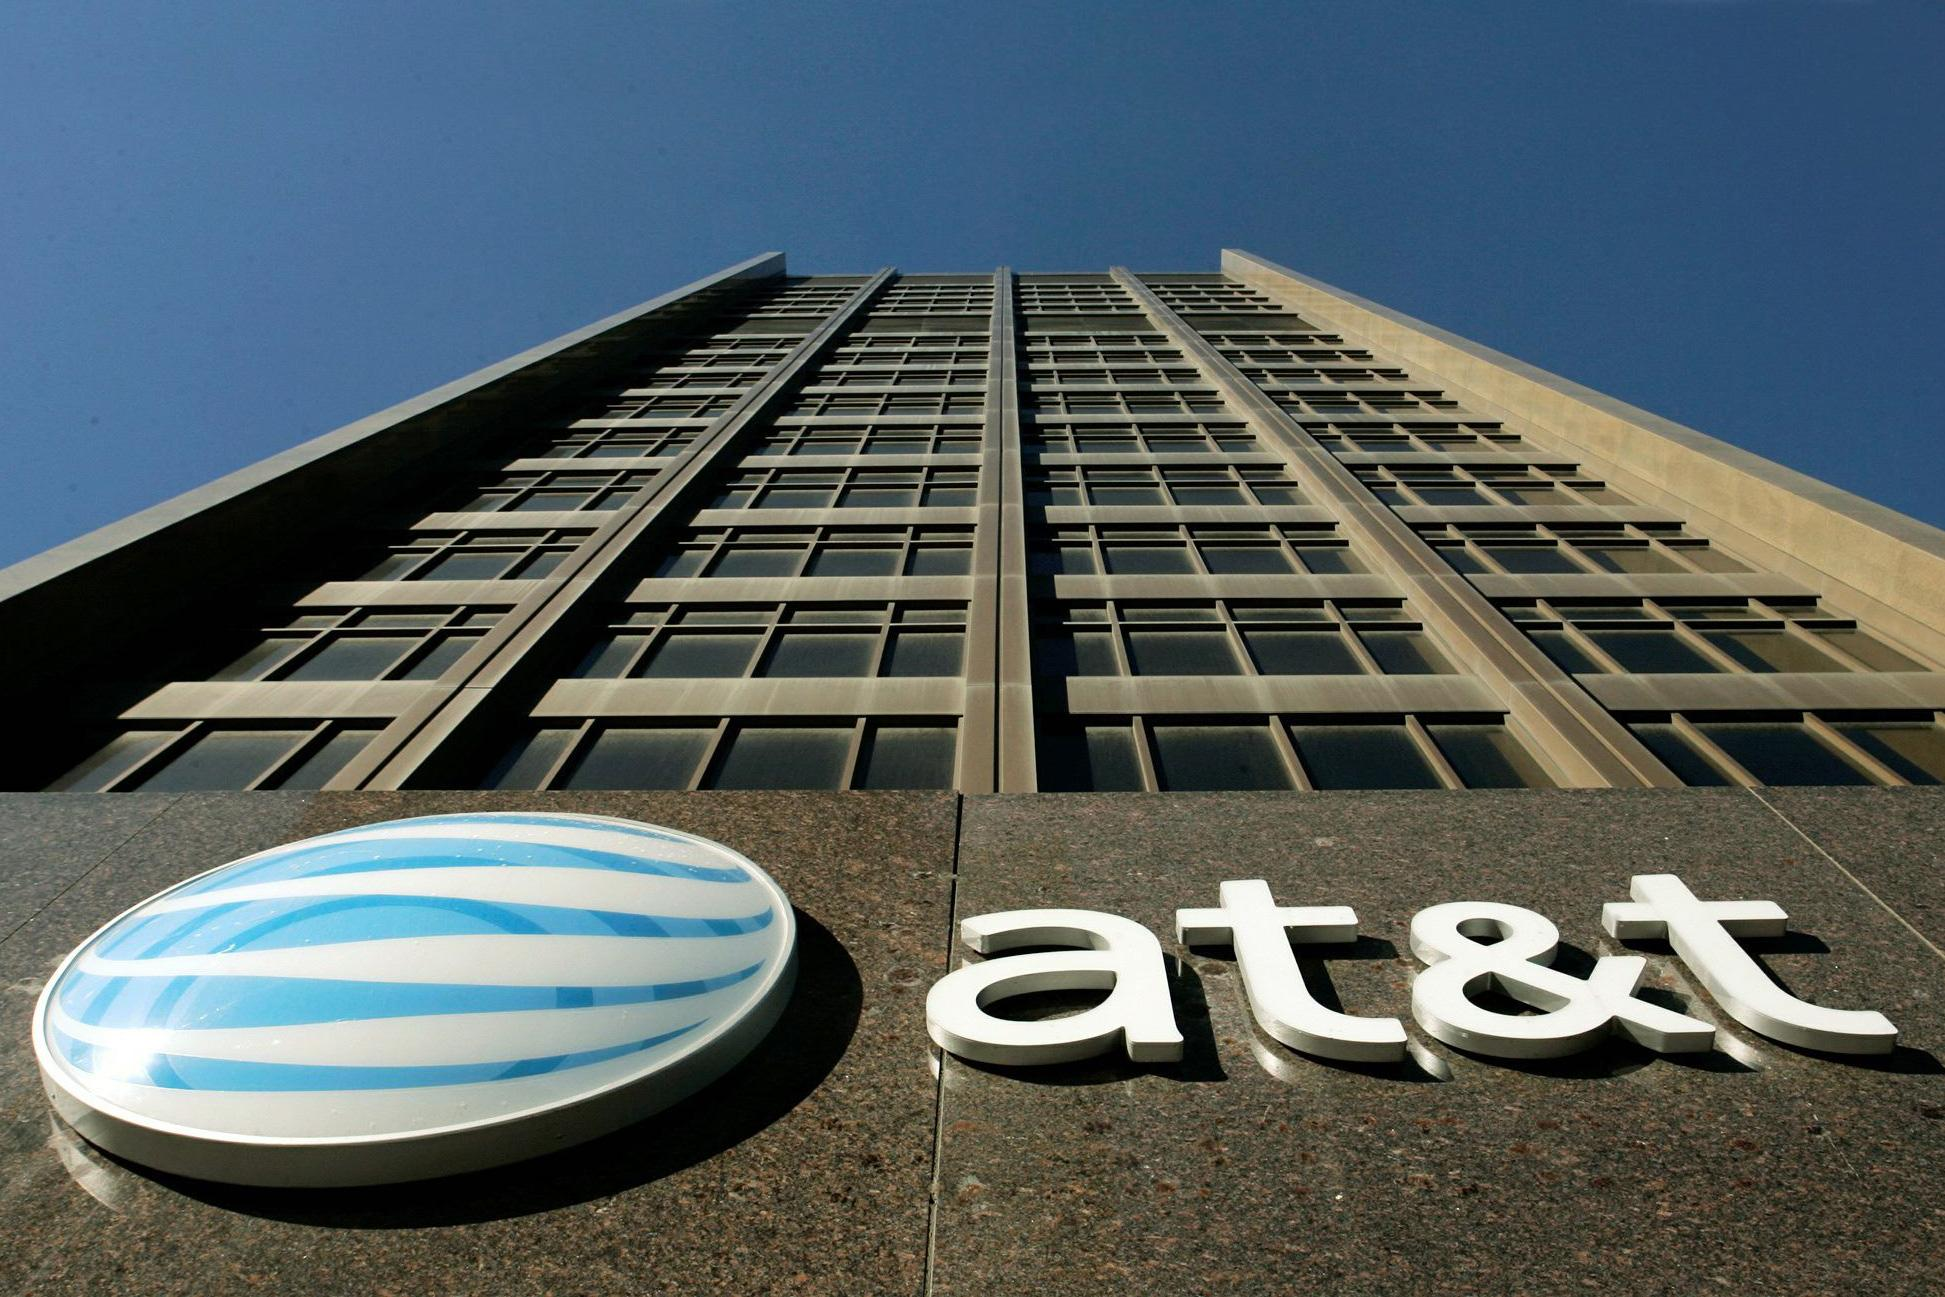 5G, The future of internet : AT&T unveils its 5G testing plans